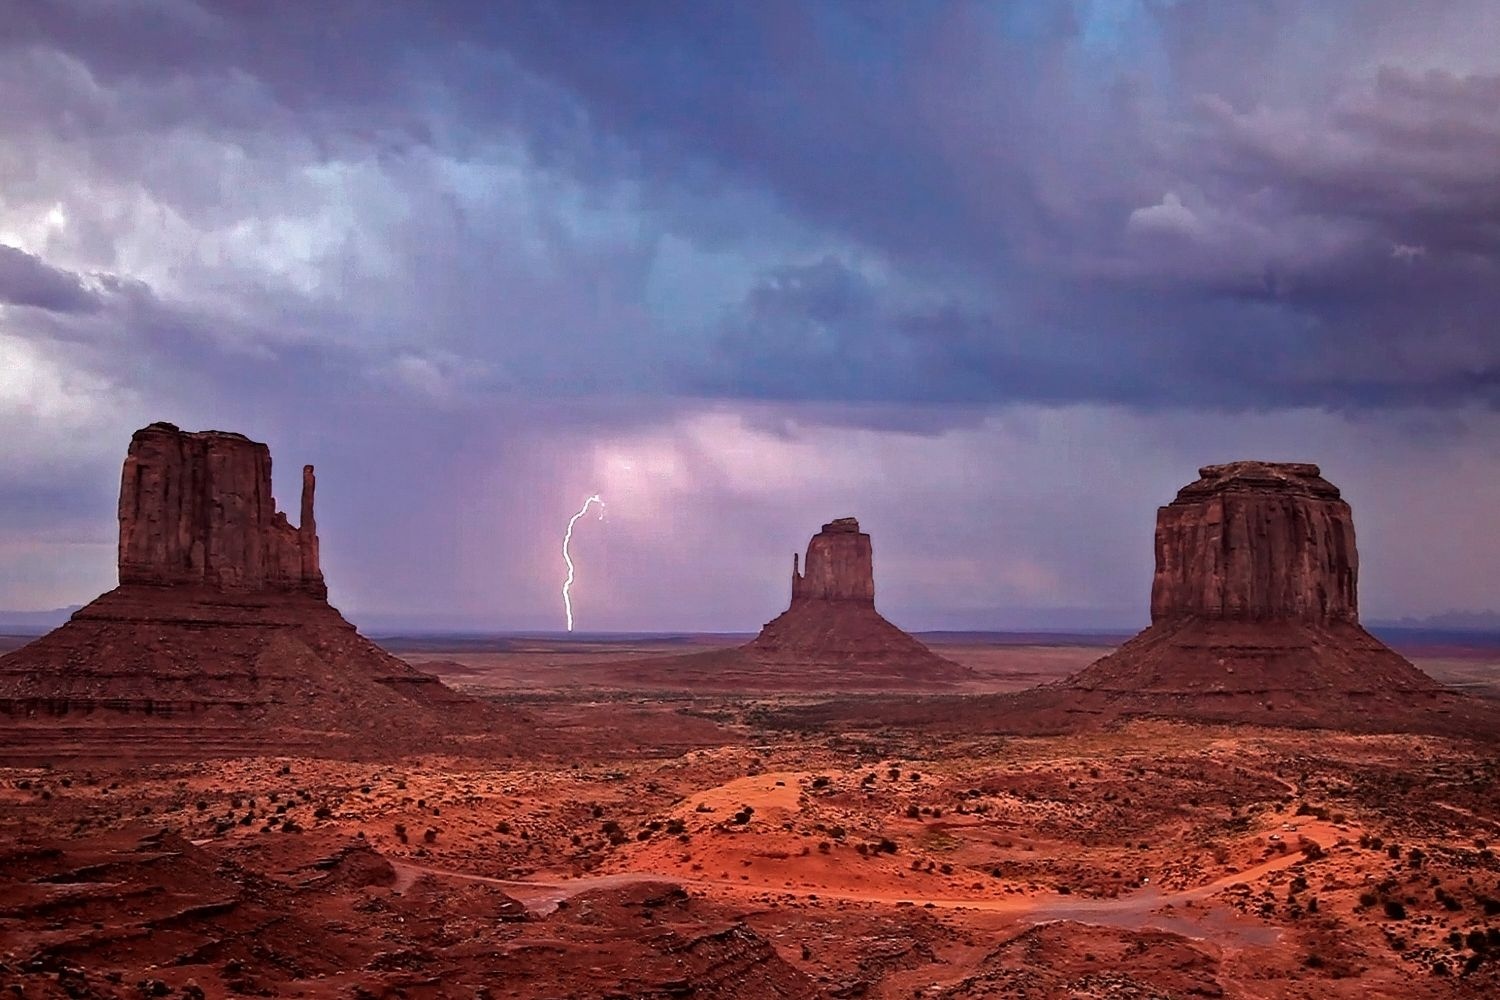 Lightning over The Mittens, Monument Valley